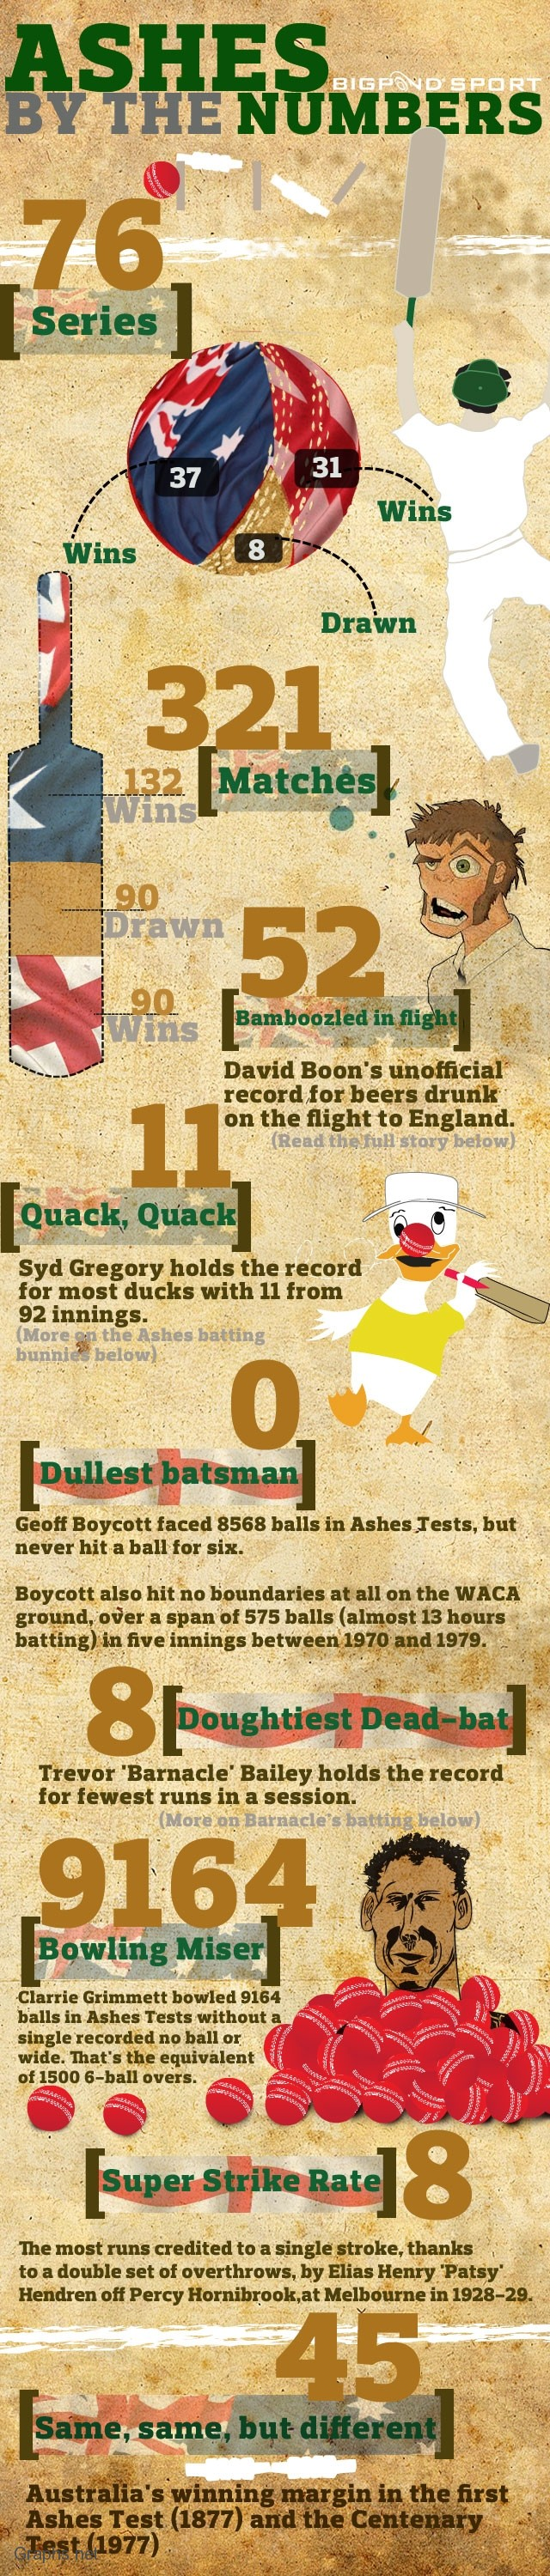 Top 10 Interesting Ashes Facts